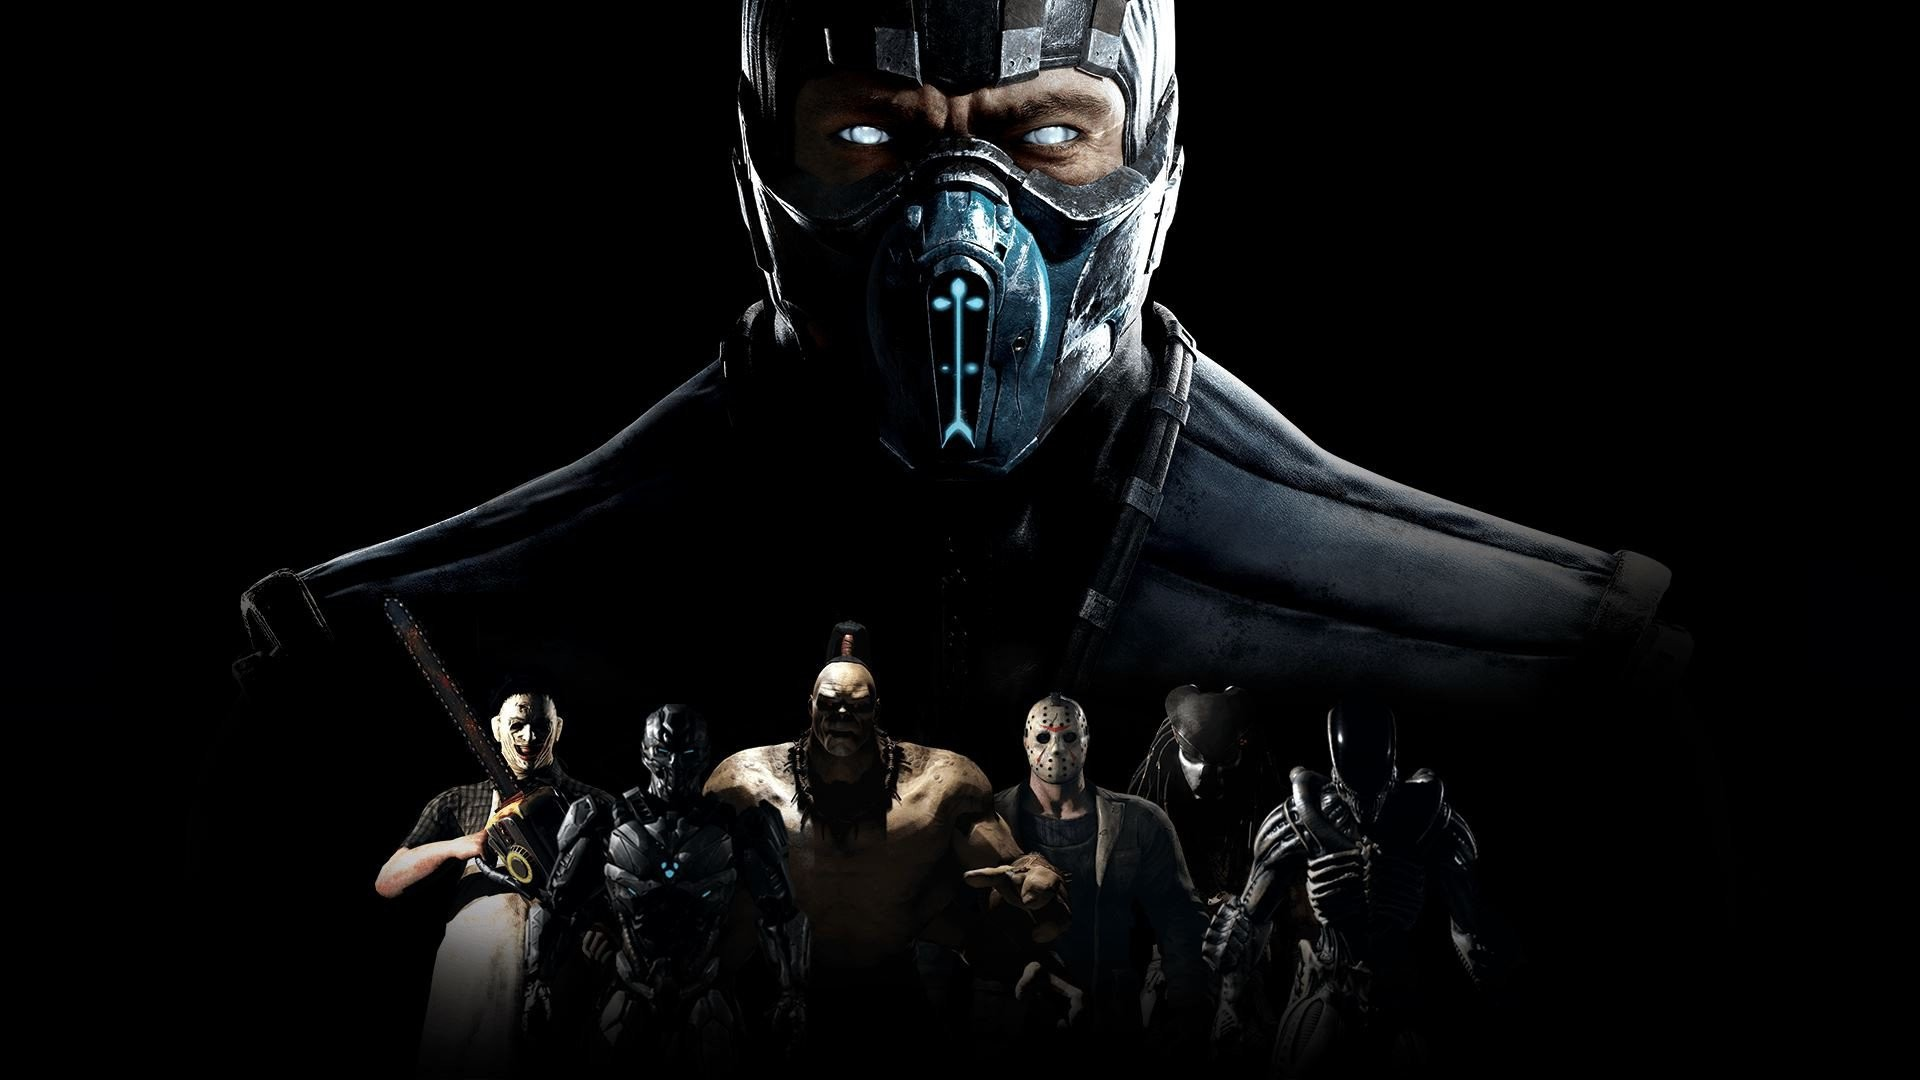 mortal kombat wallpapers scorpion (65+ images)